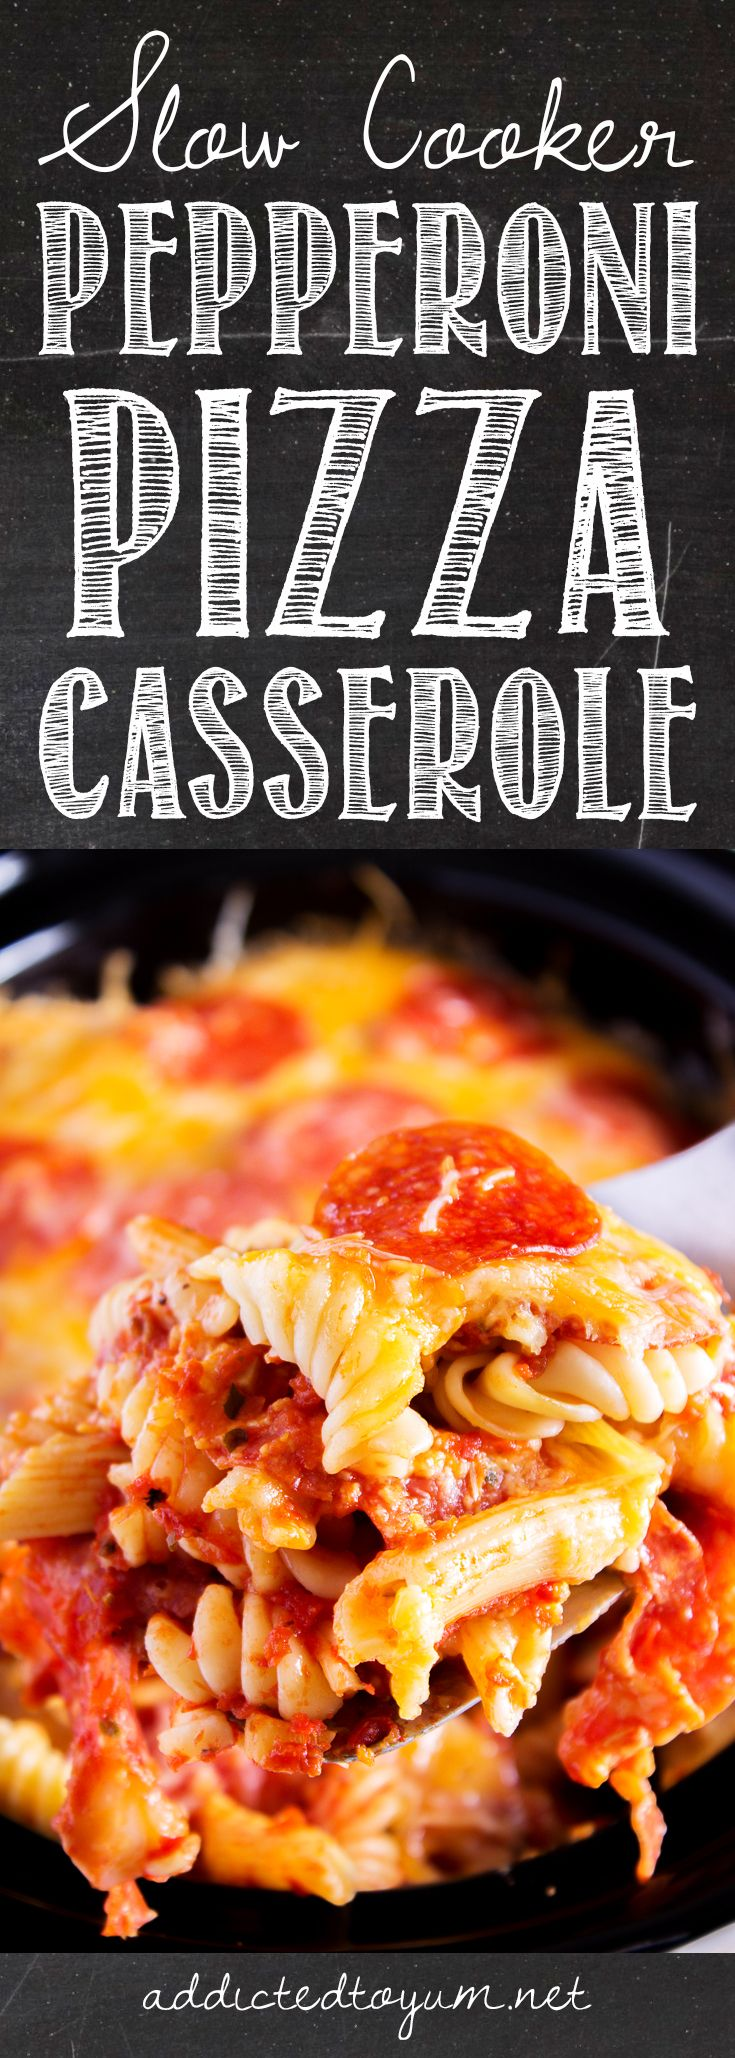 Slow Cooker Pepperoni Pizza Casserole - I can't even believe how easy this is to make! And because I'm feeding 4 ravenous kids (including 2 teenage boys!) and 2 adults this summer, I'm all about easy meals that are quick, hands off, and work for more than just one meal. The gooey cheese and pepperoni make even the pick eaters happy – huge win! Everyone loves pizza!